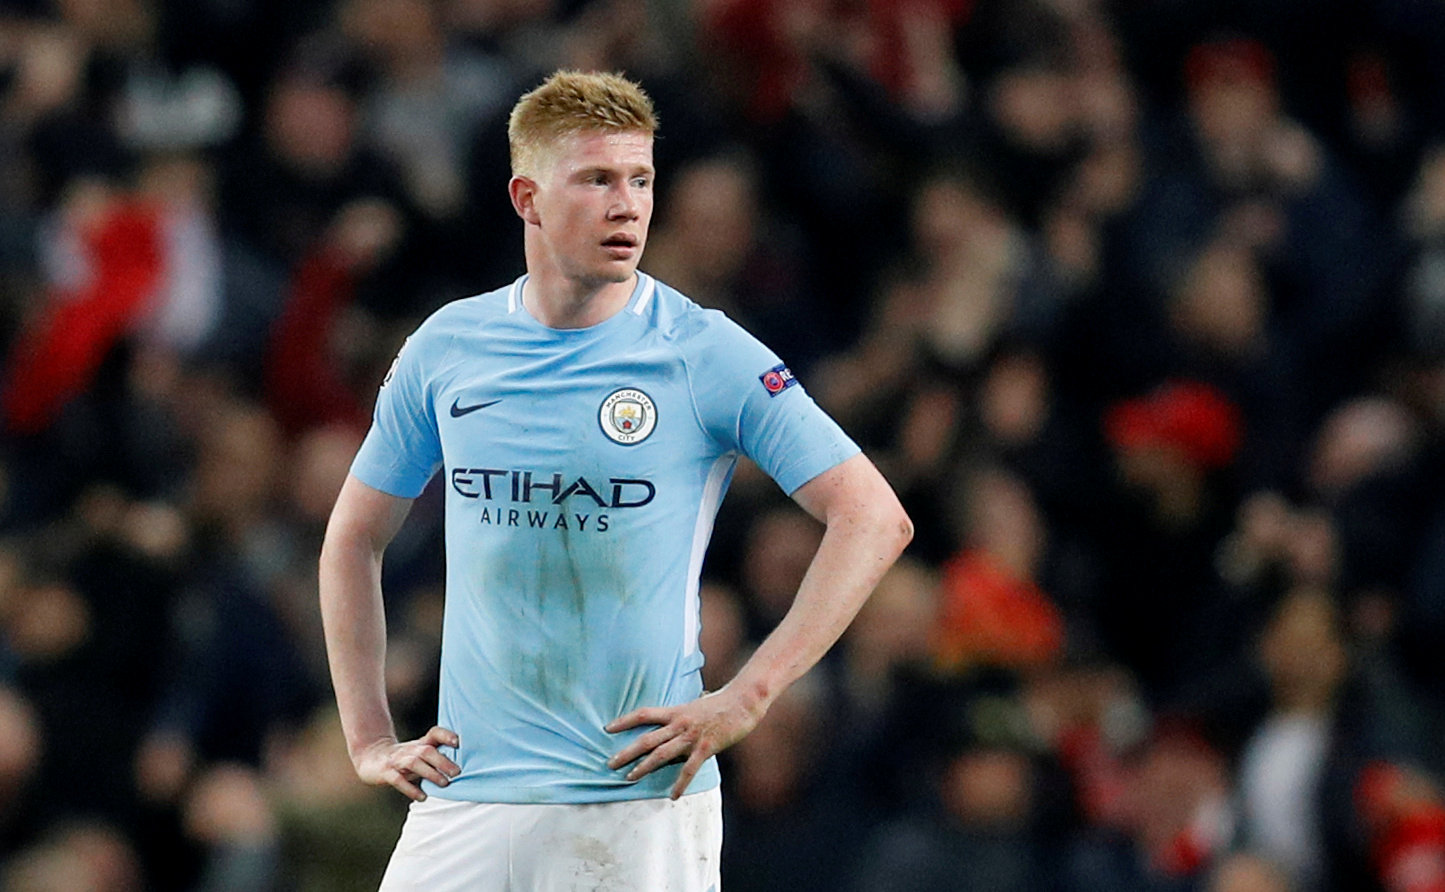 FILE PHOTO: Manchester City's Kevin De Bruyne in Champions League action at Etihad Stadium, Manchester, Britain - April 10, 2018.       REUTERS